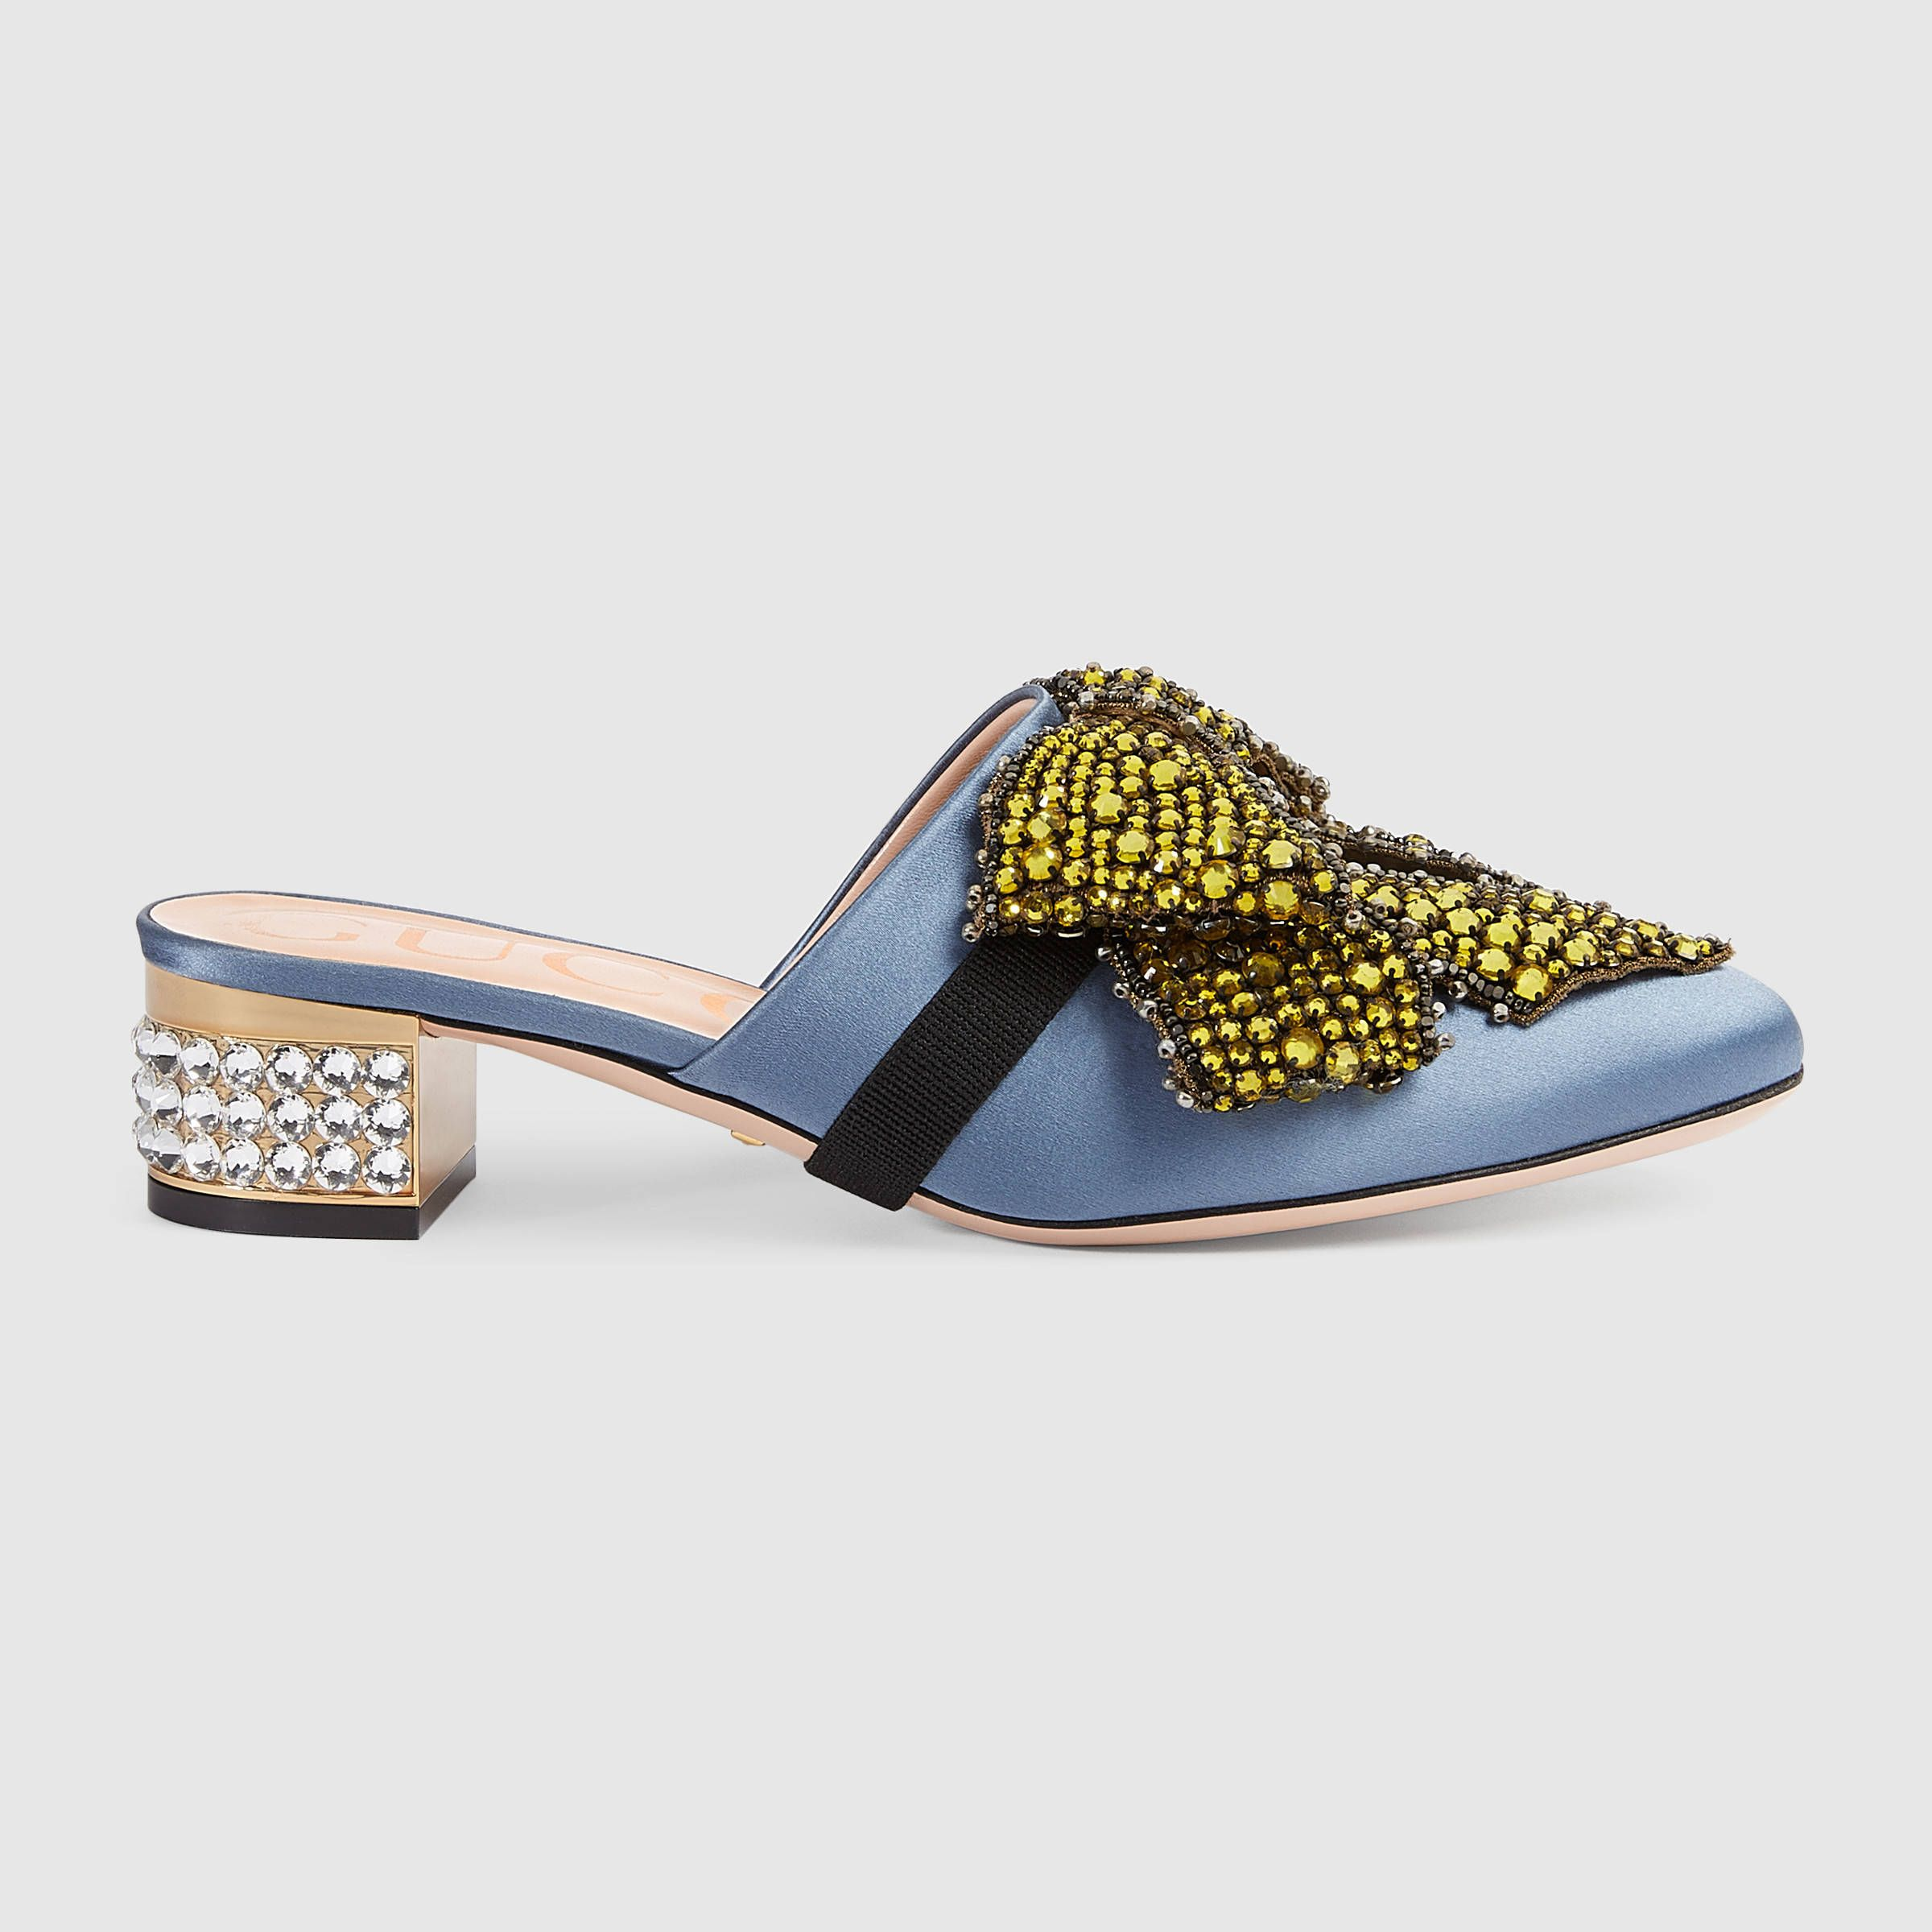 39fe4c108 Satin slipper with removable crystal bow - Gucci Women's Shoes  476021F14004200